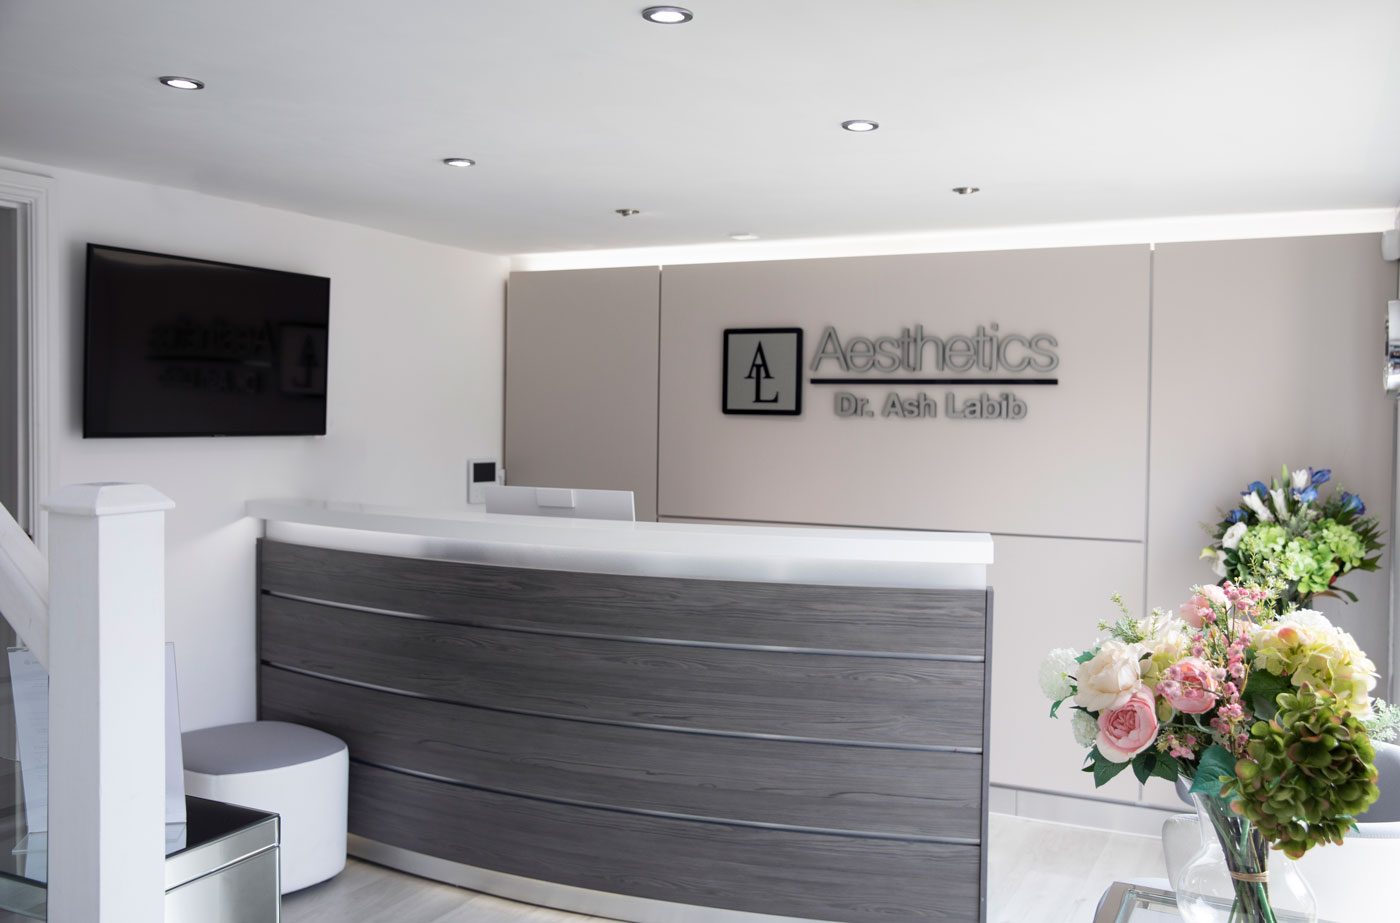 Aesthetics clinic in Solihull